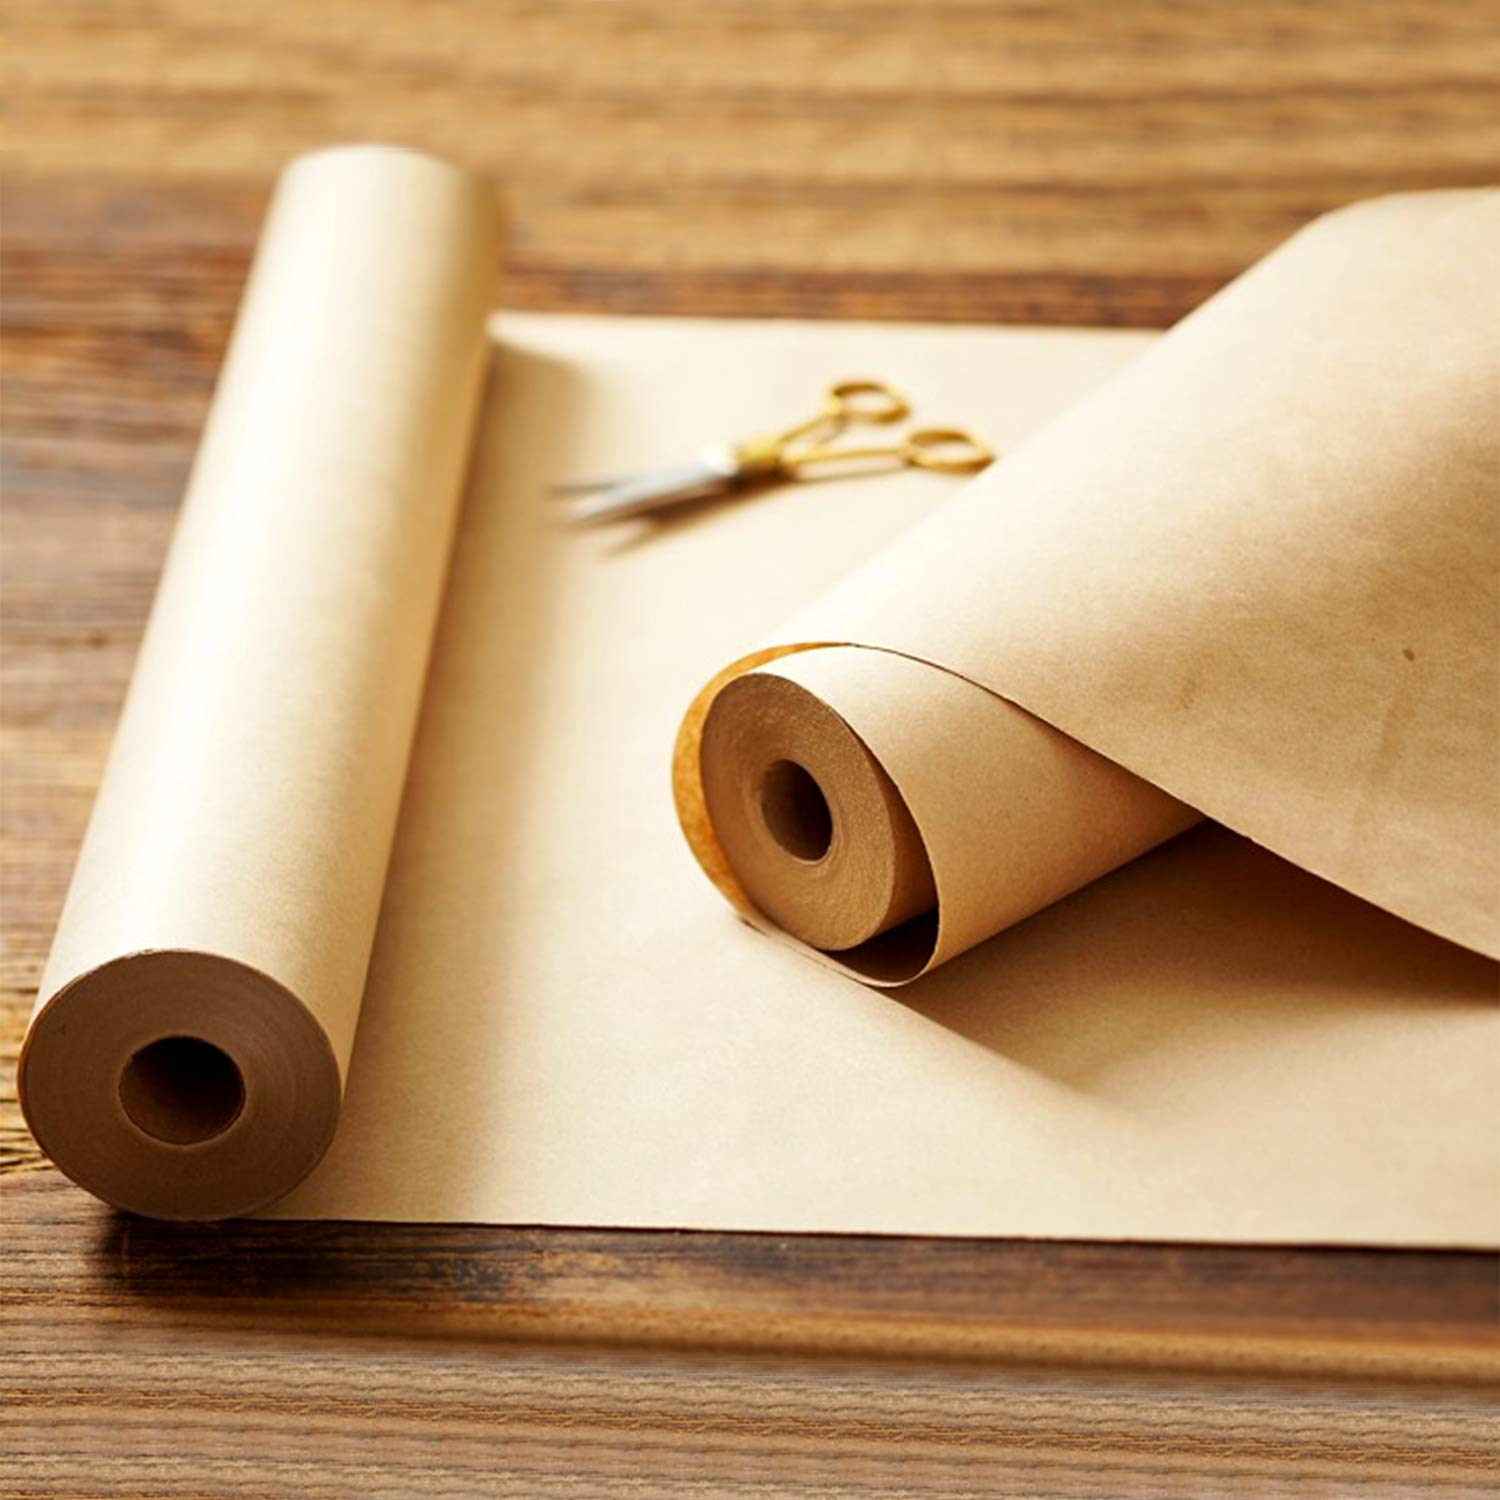 Wrapping Paper Shipping /& Table Settings by Paper Pros 24 inches x 100 feet Unbleached Crafts Packing Unwaxed /& Uncoated for Arts Recycled Kraft Paper Roll